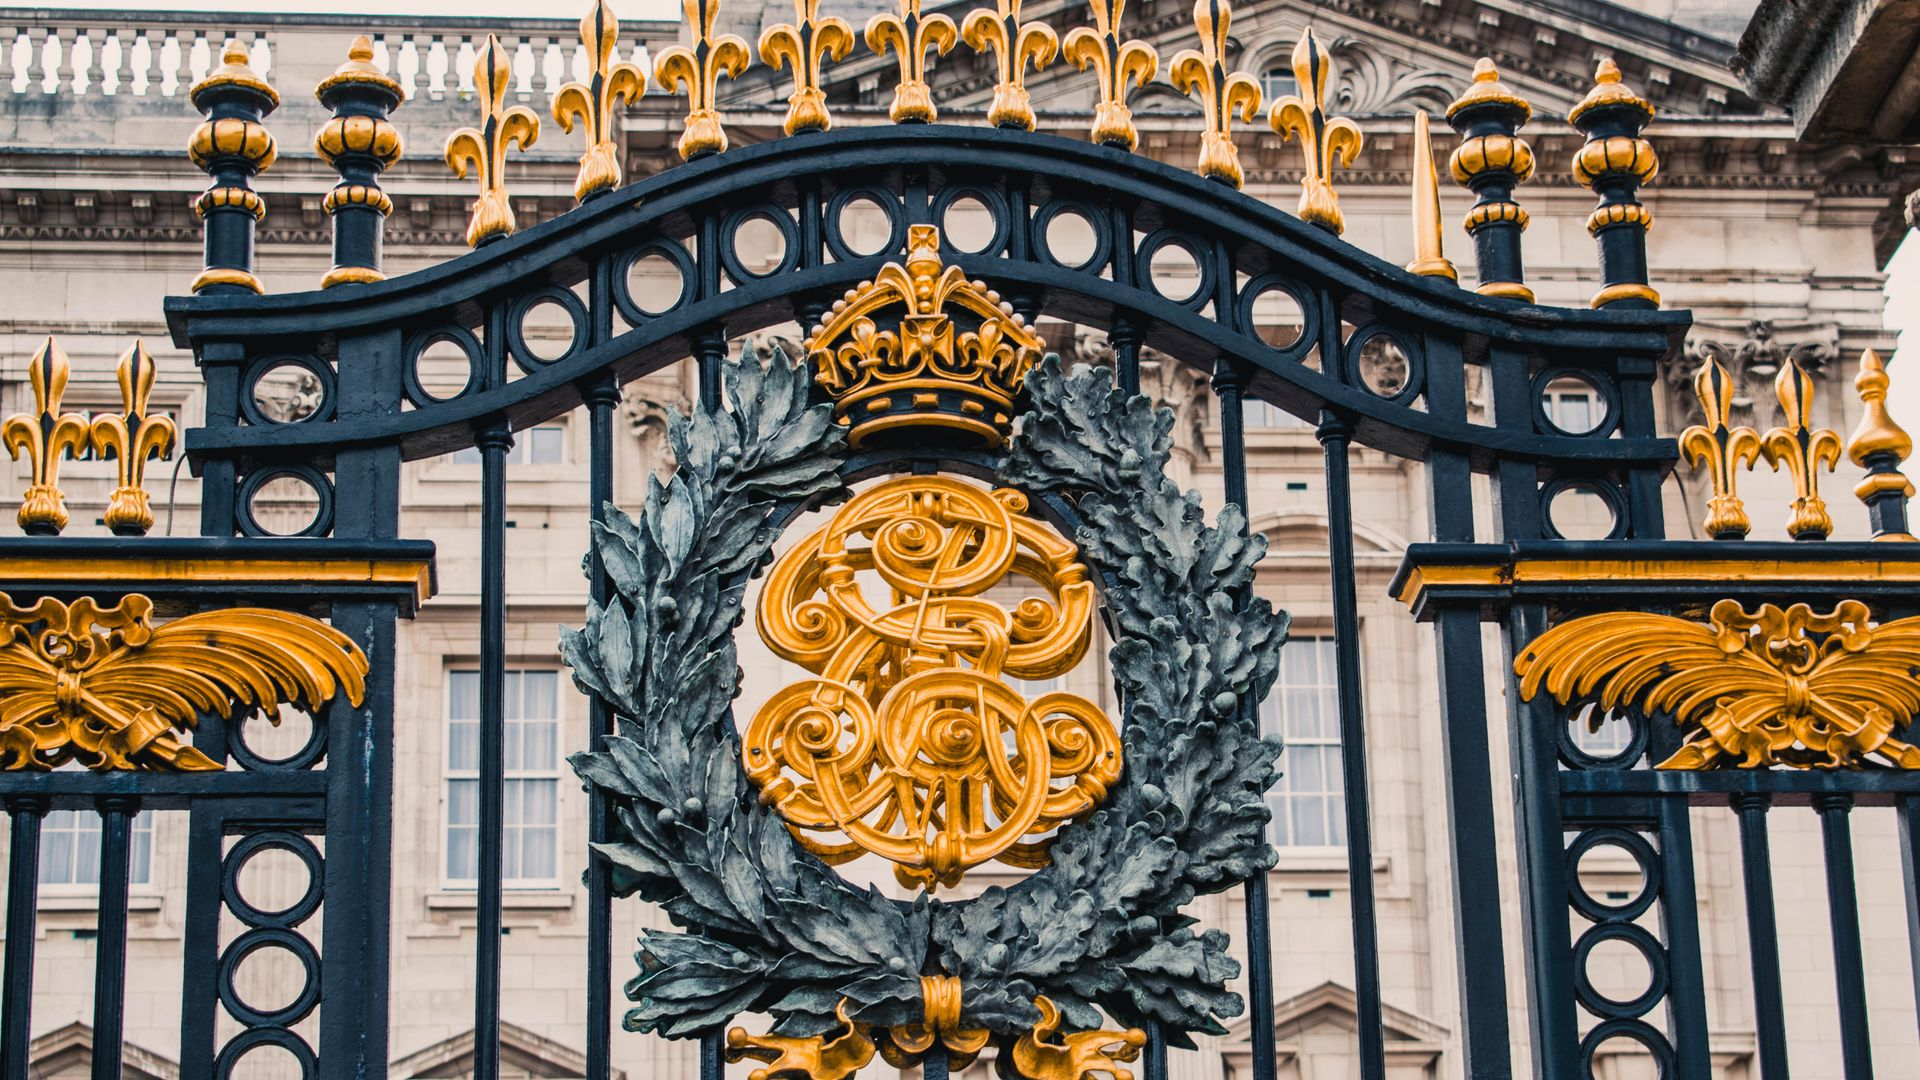 city,walking,finish,capital of the united kingdom,palace,buckingham,of,british capital,up,ending,fold,urban center,london,boon,gate,close,castle,stopping point